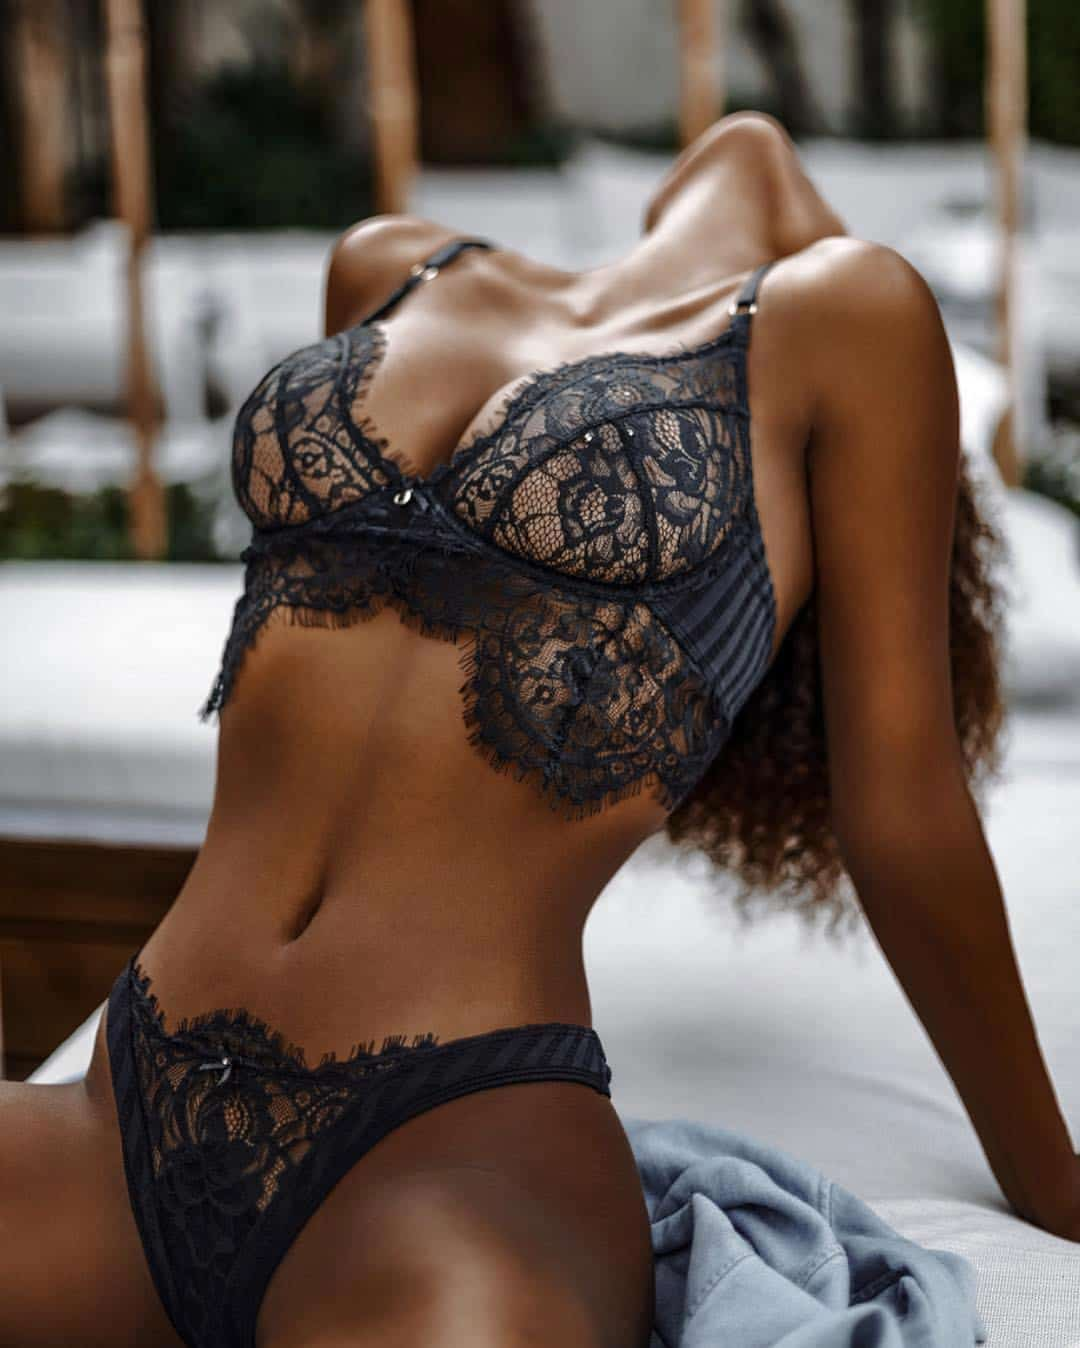 Lady wearing lingerie